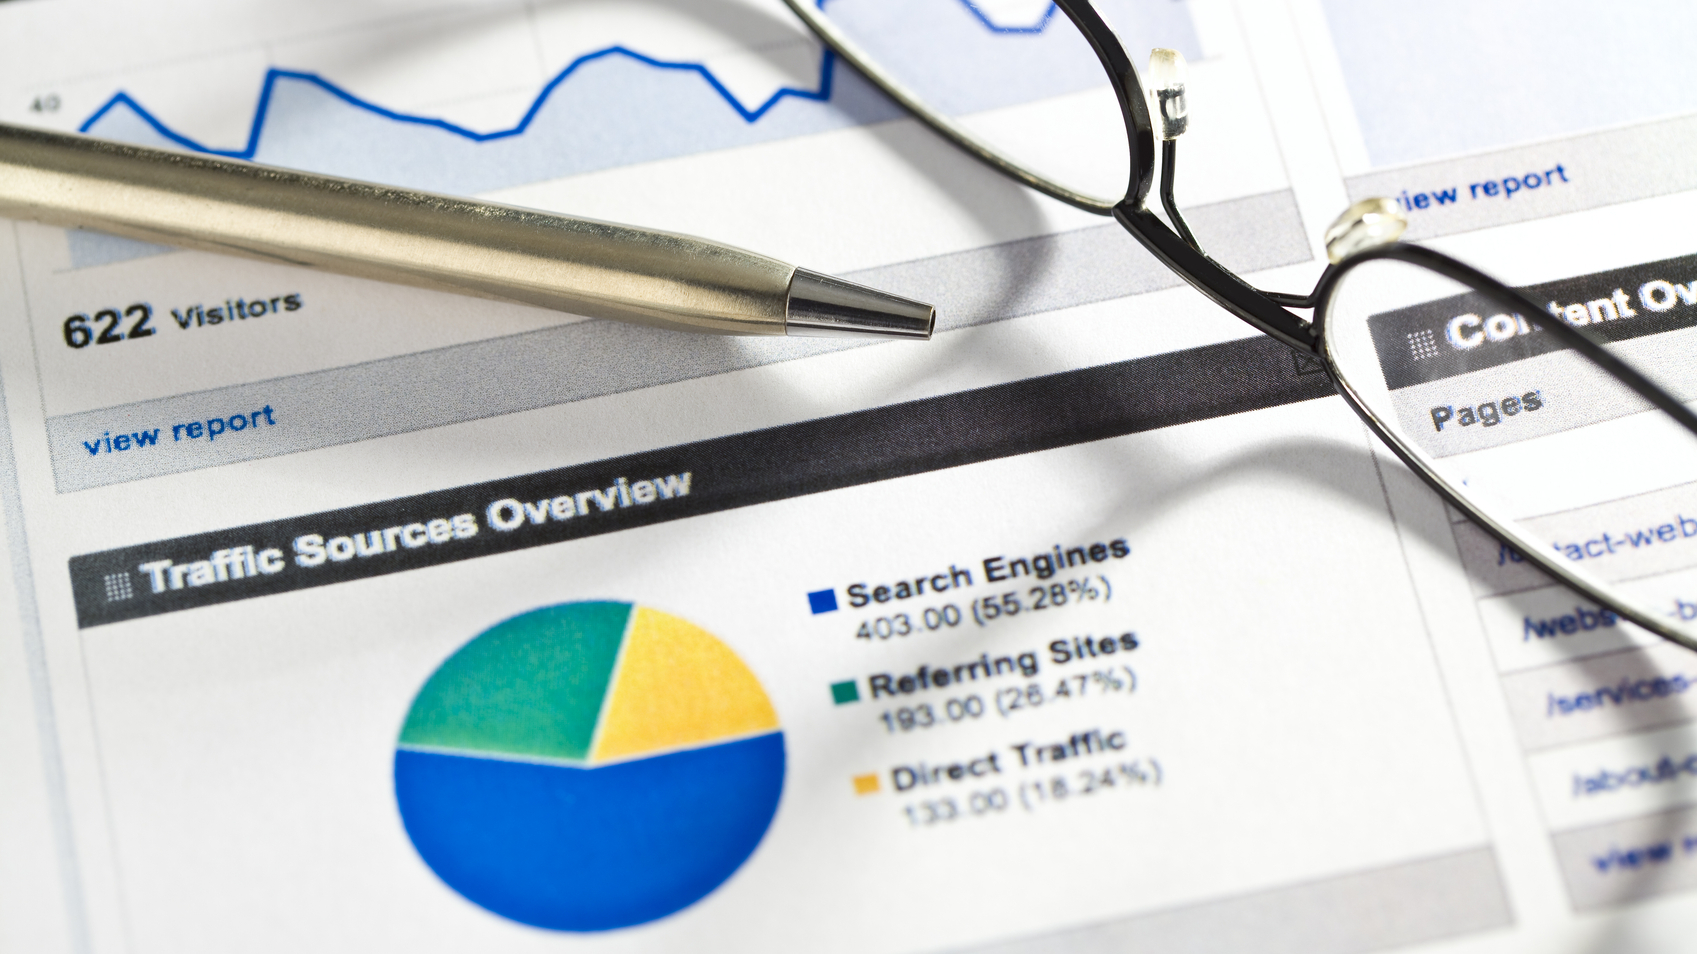 SEO website traffic charts and graphs.